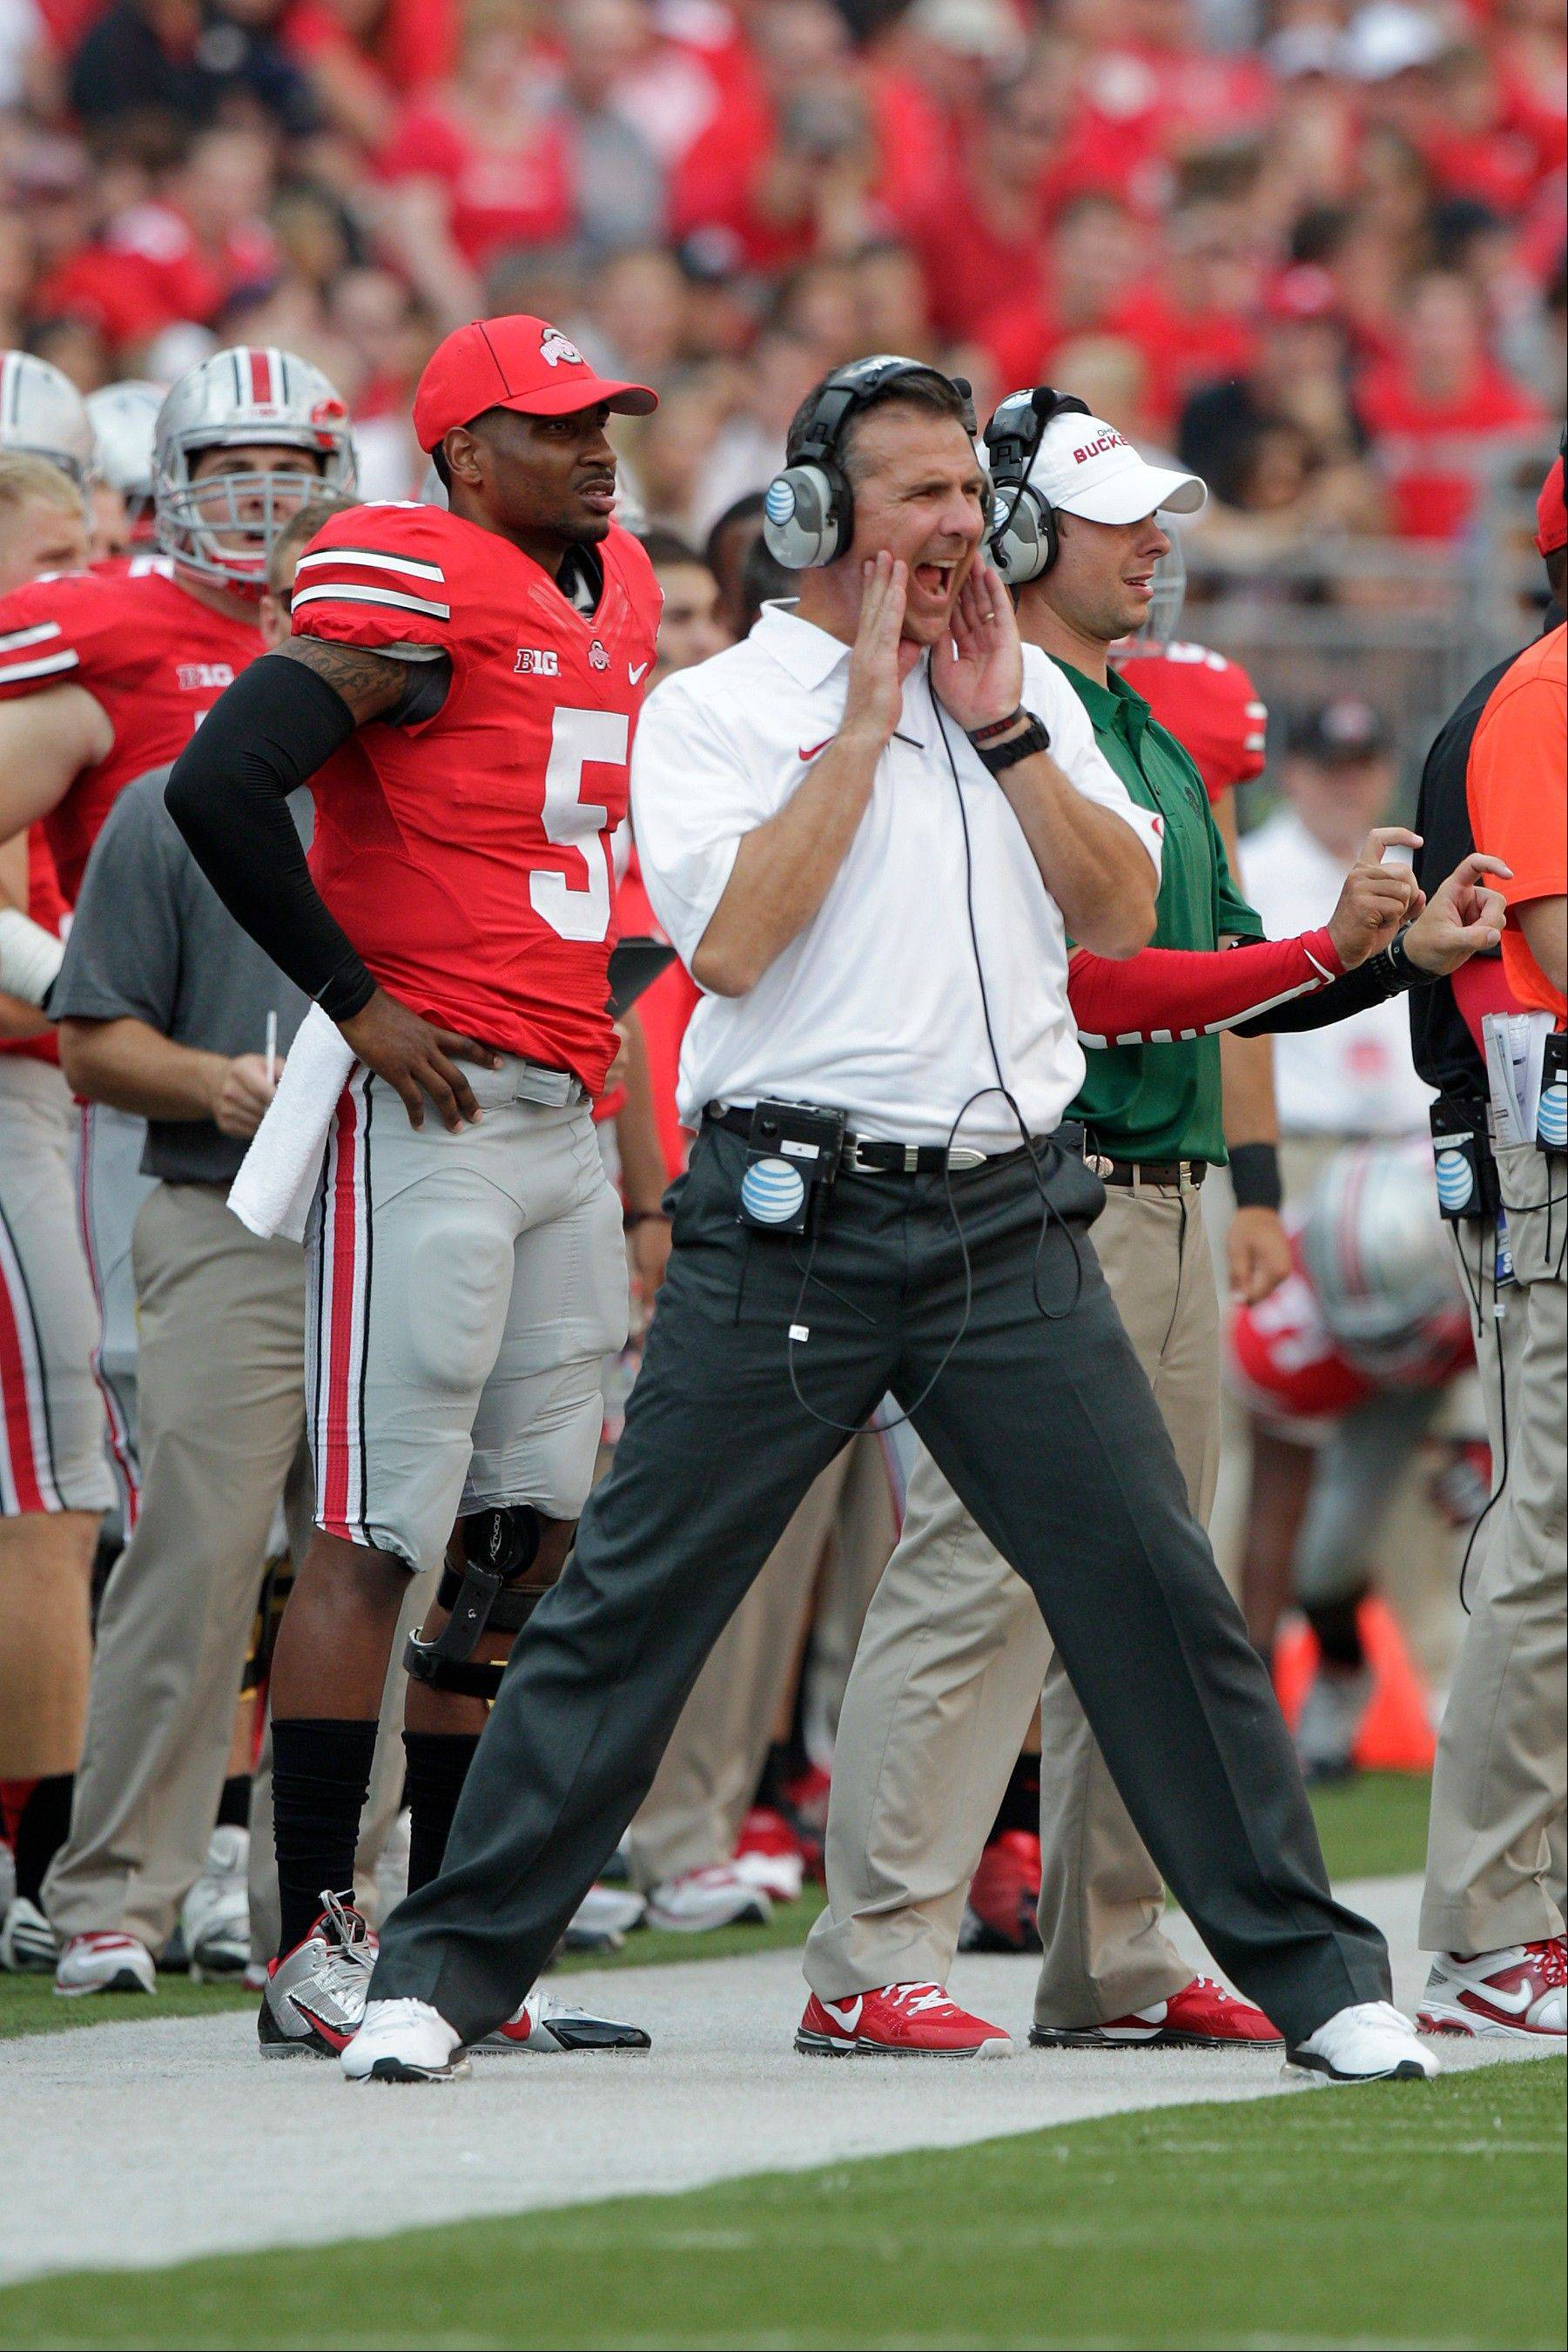 As wins mount, so does pressure on No. 4 Buckeyes